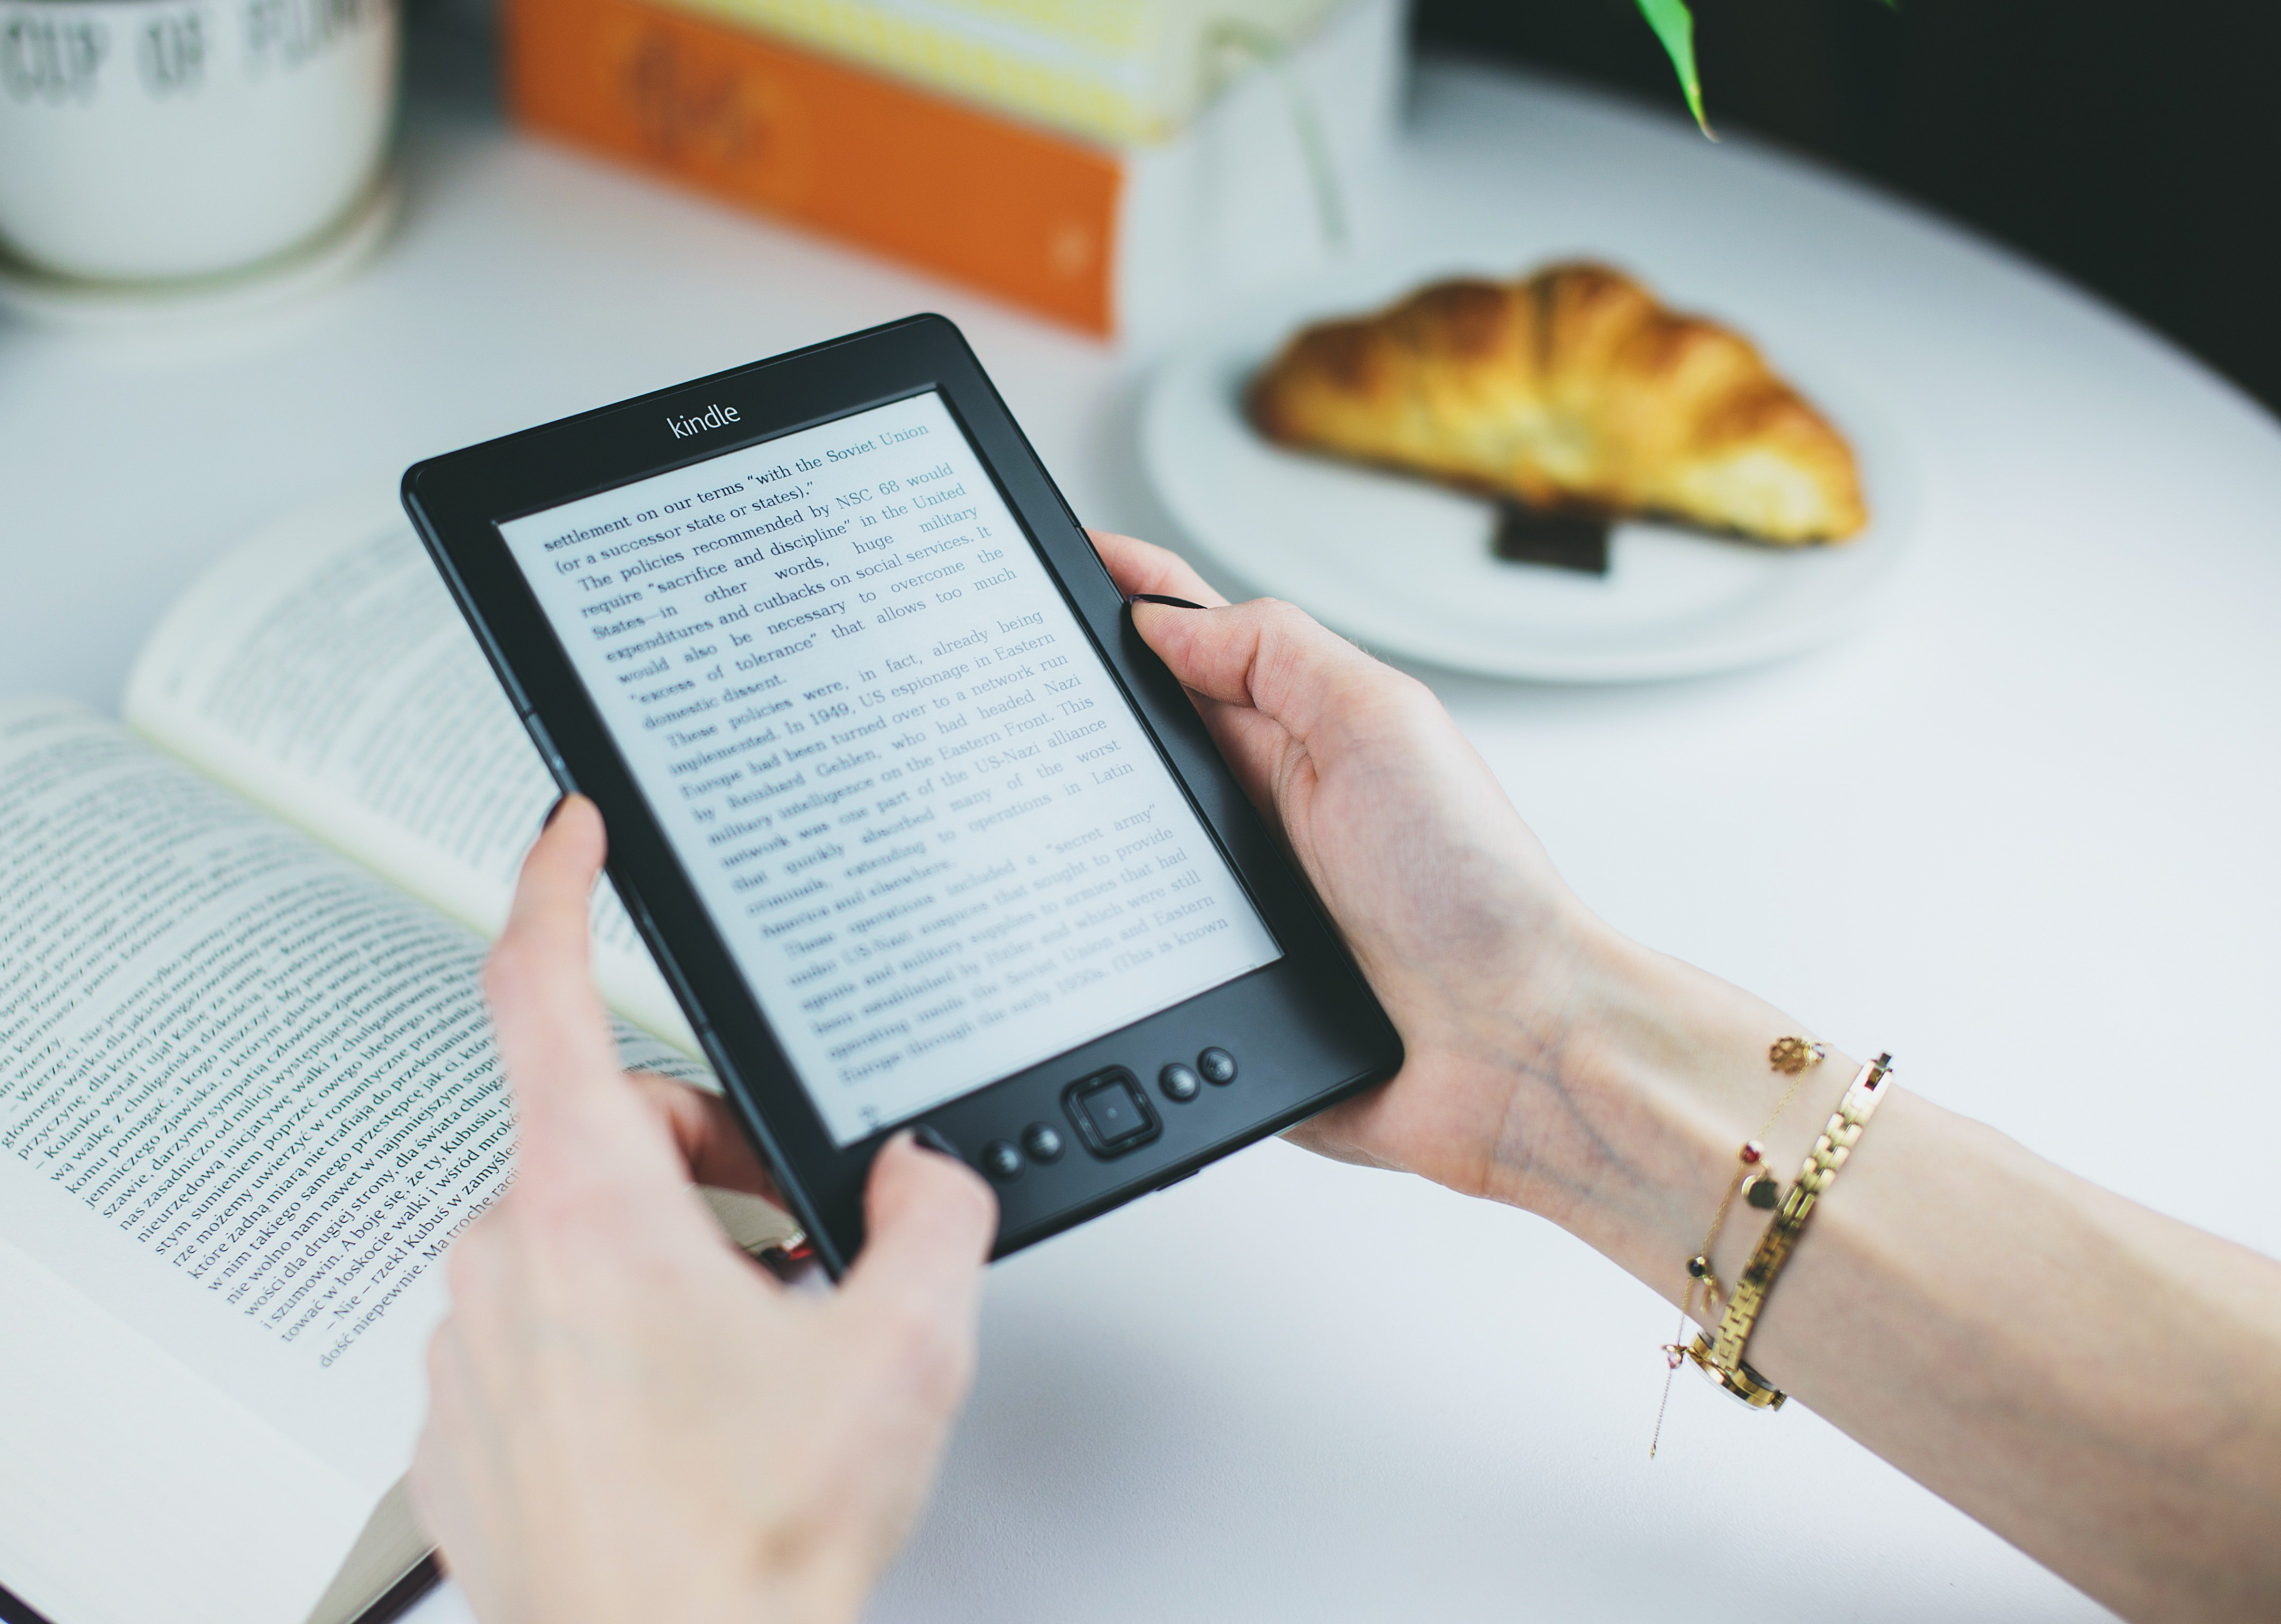 Videorecensione kindle touch l ultima versione del famoso e book